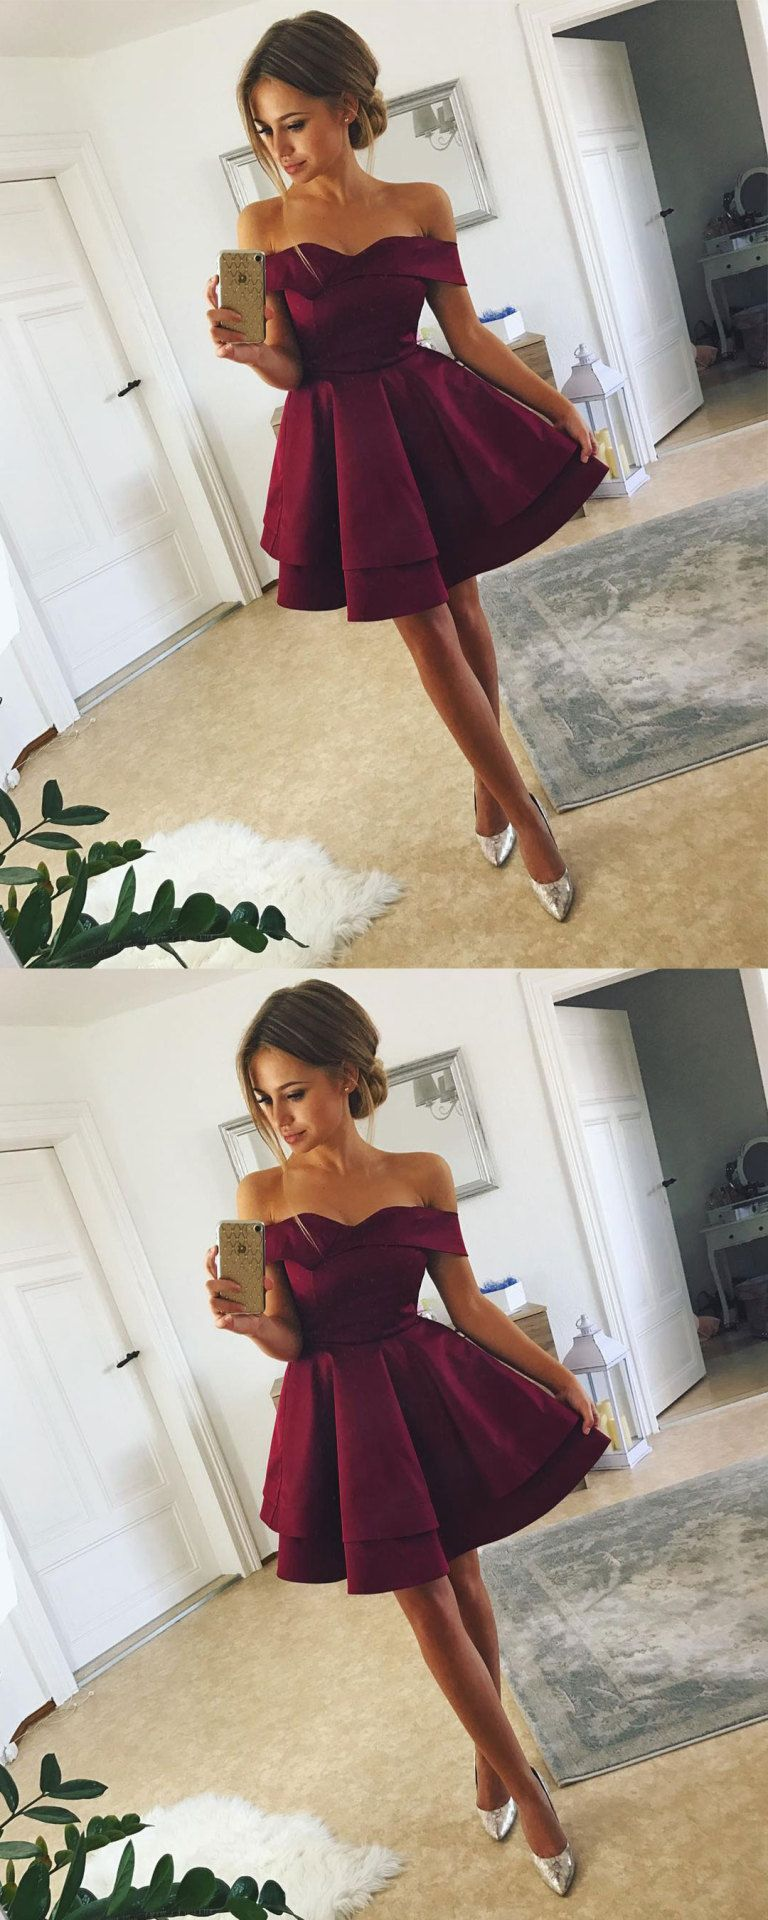 2Pcs Femmes Dentelle Homecoming Robe Courte Col Haut Satin Cocktail Prom Party Robes